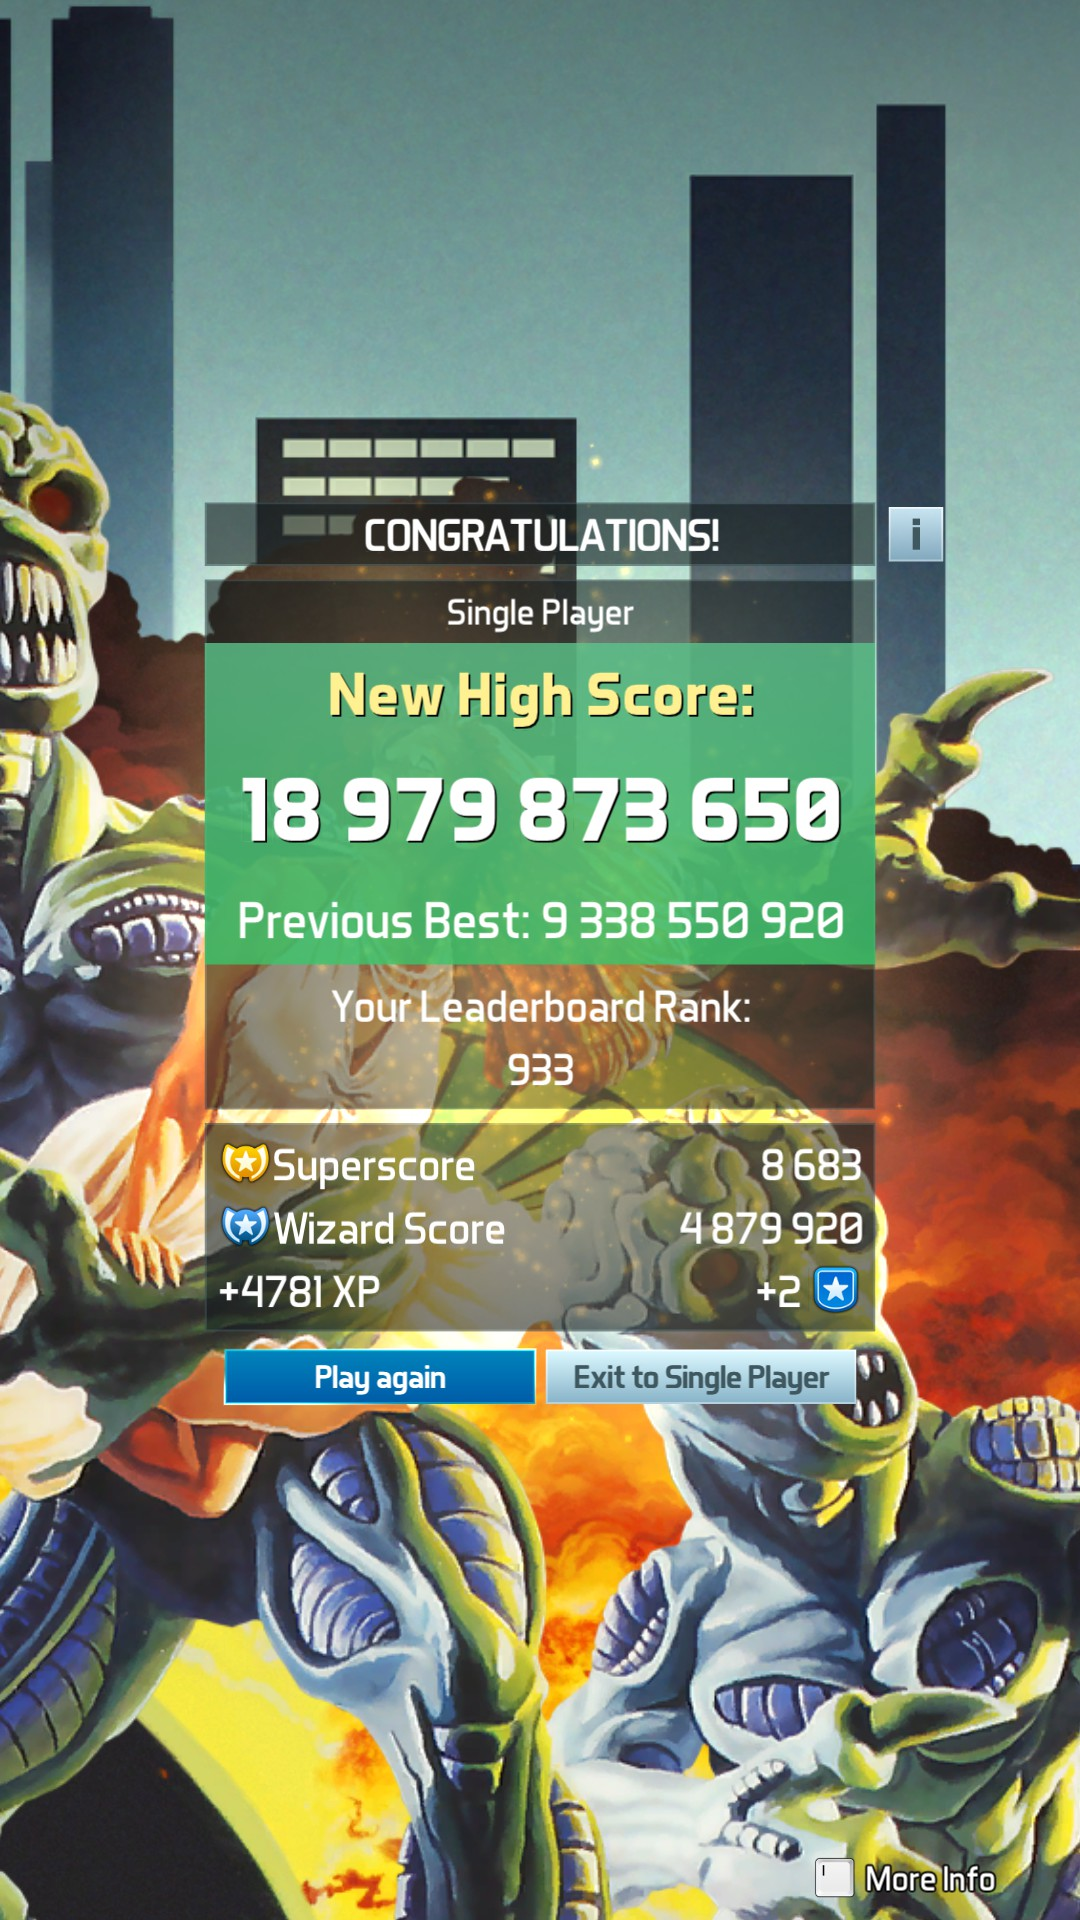 Pinball FX3: Attack From Mars [Standard] 18,979,873,650 points